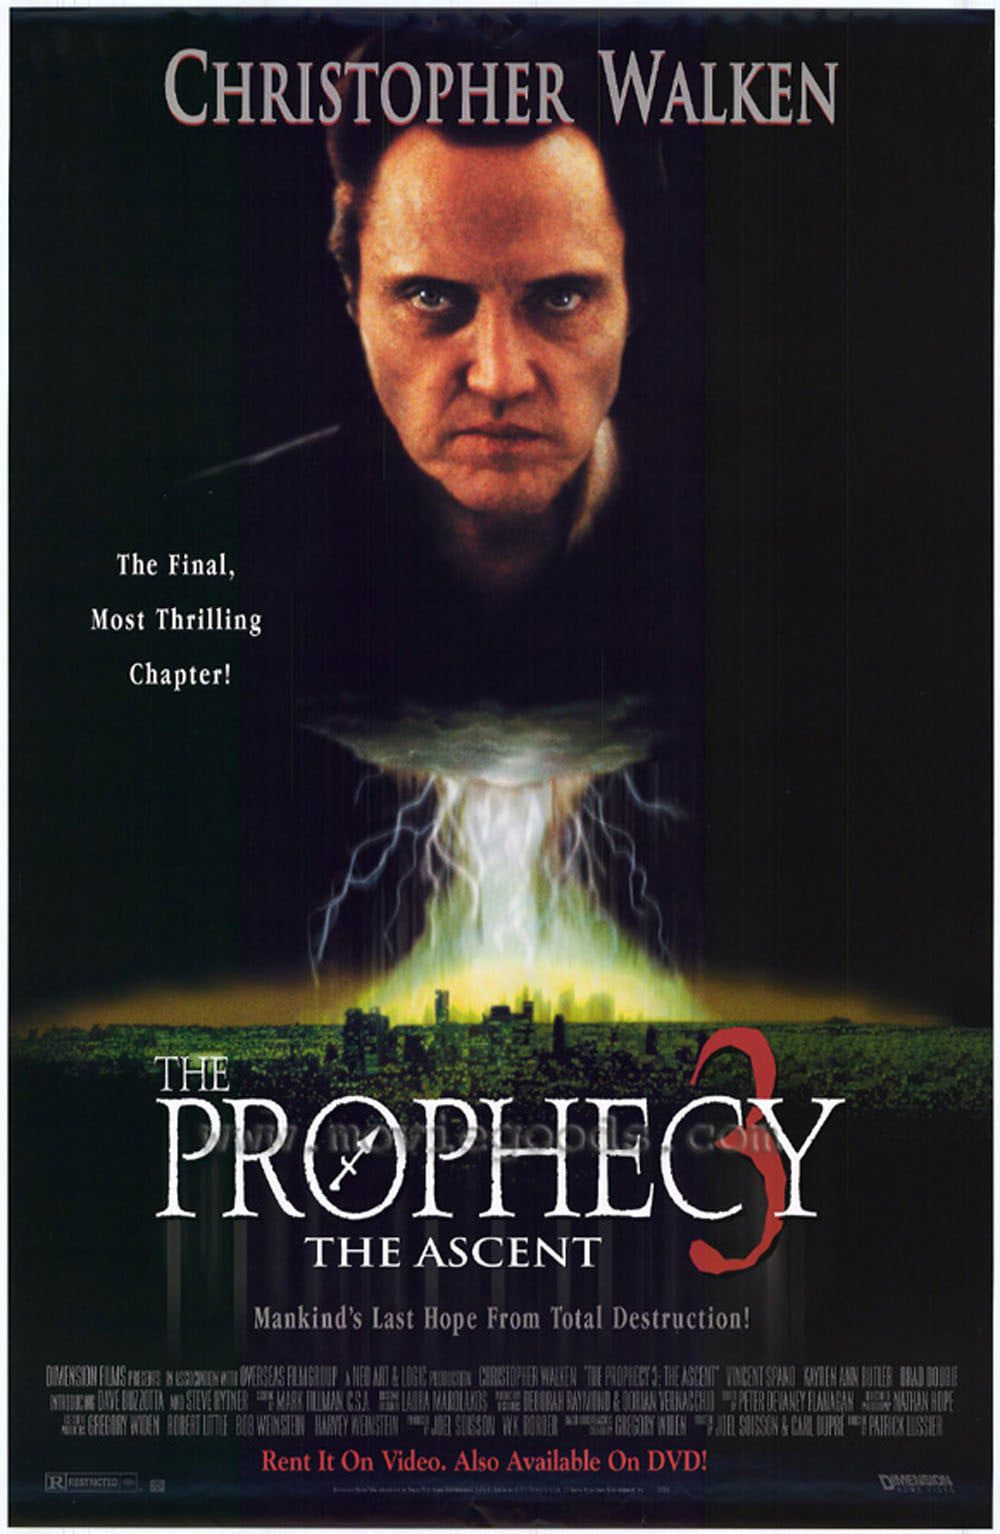 Affiche Poster prophecy 3 ascent disney dimension